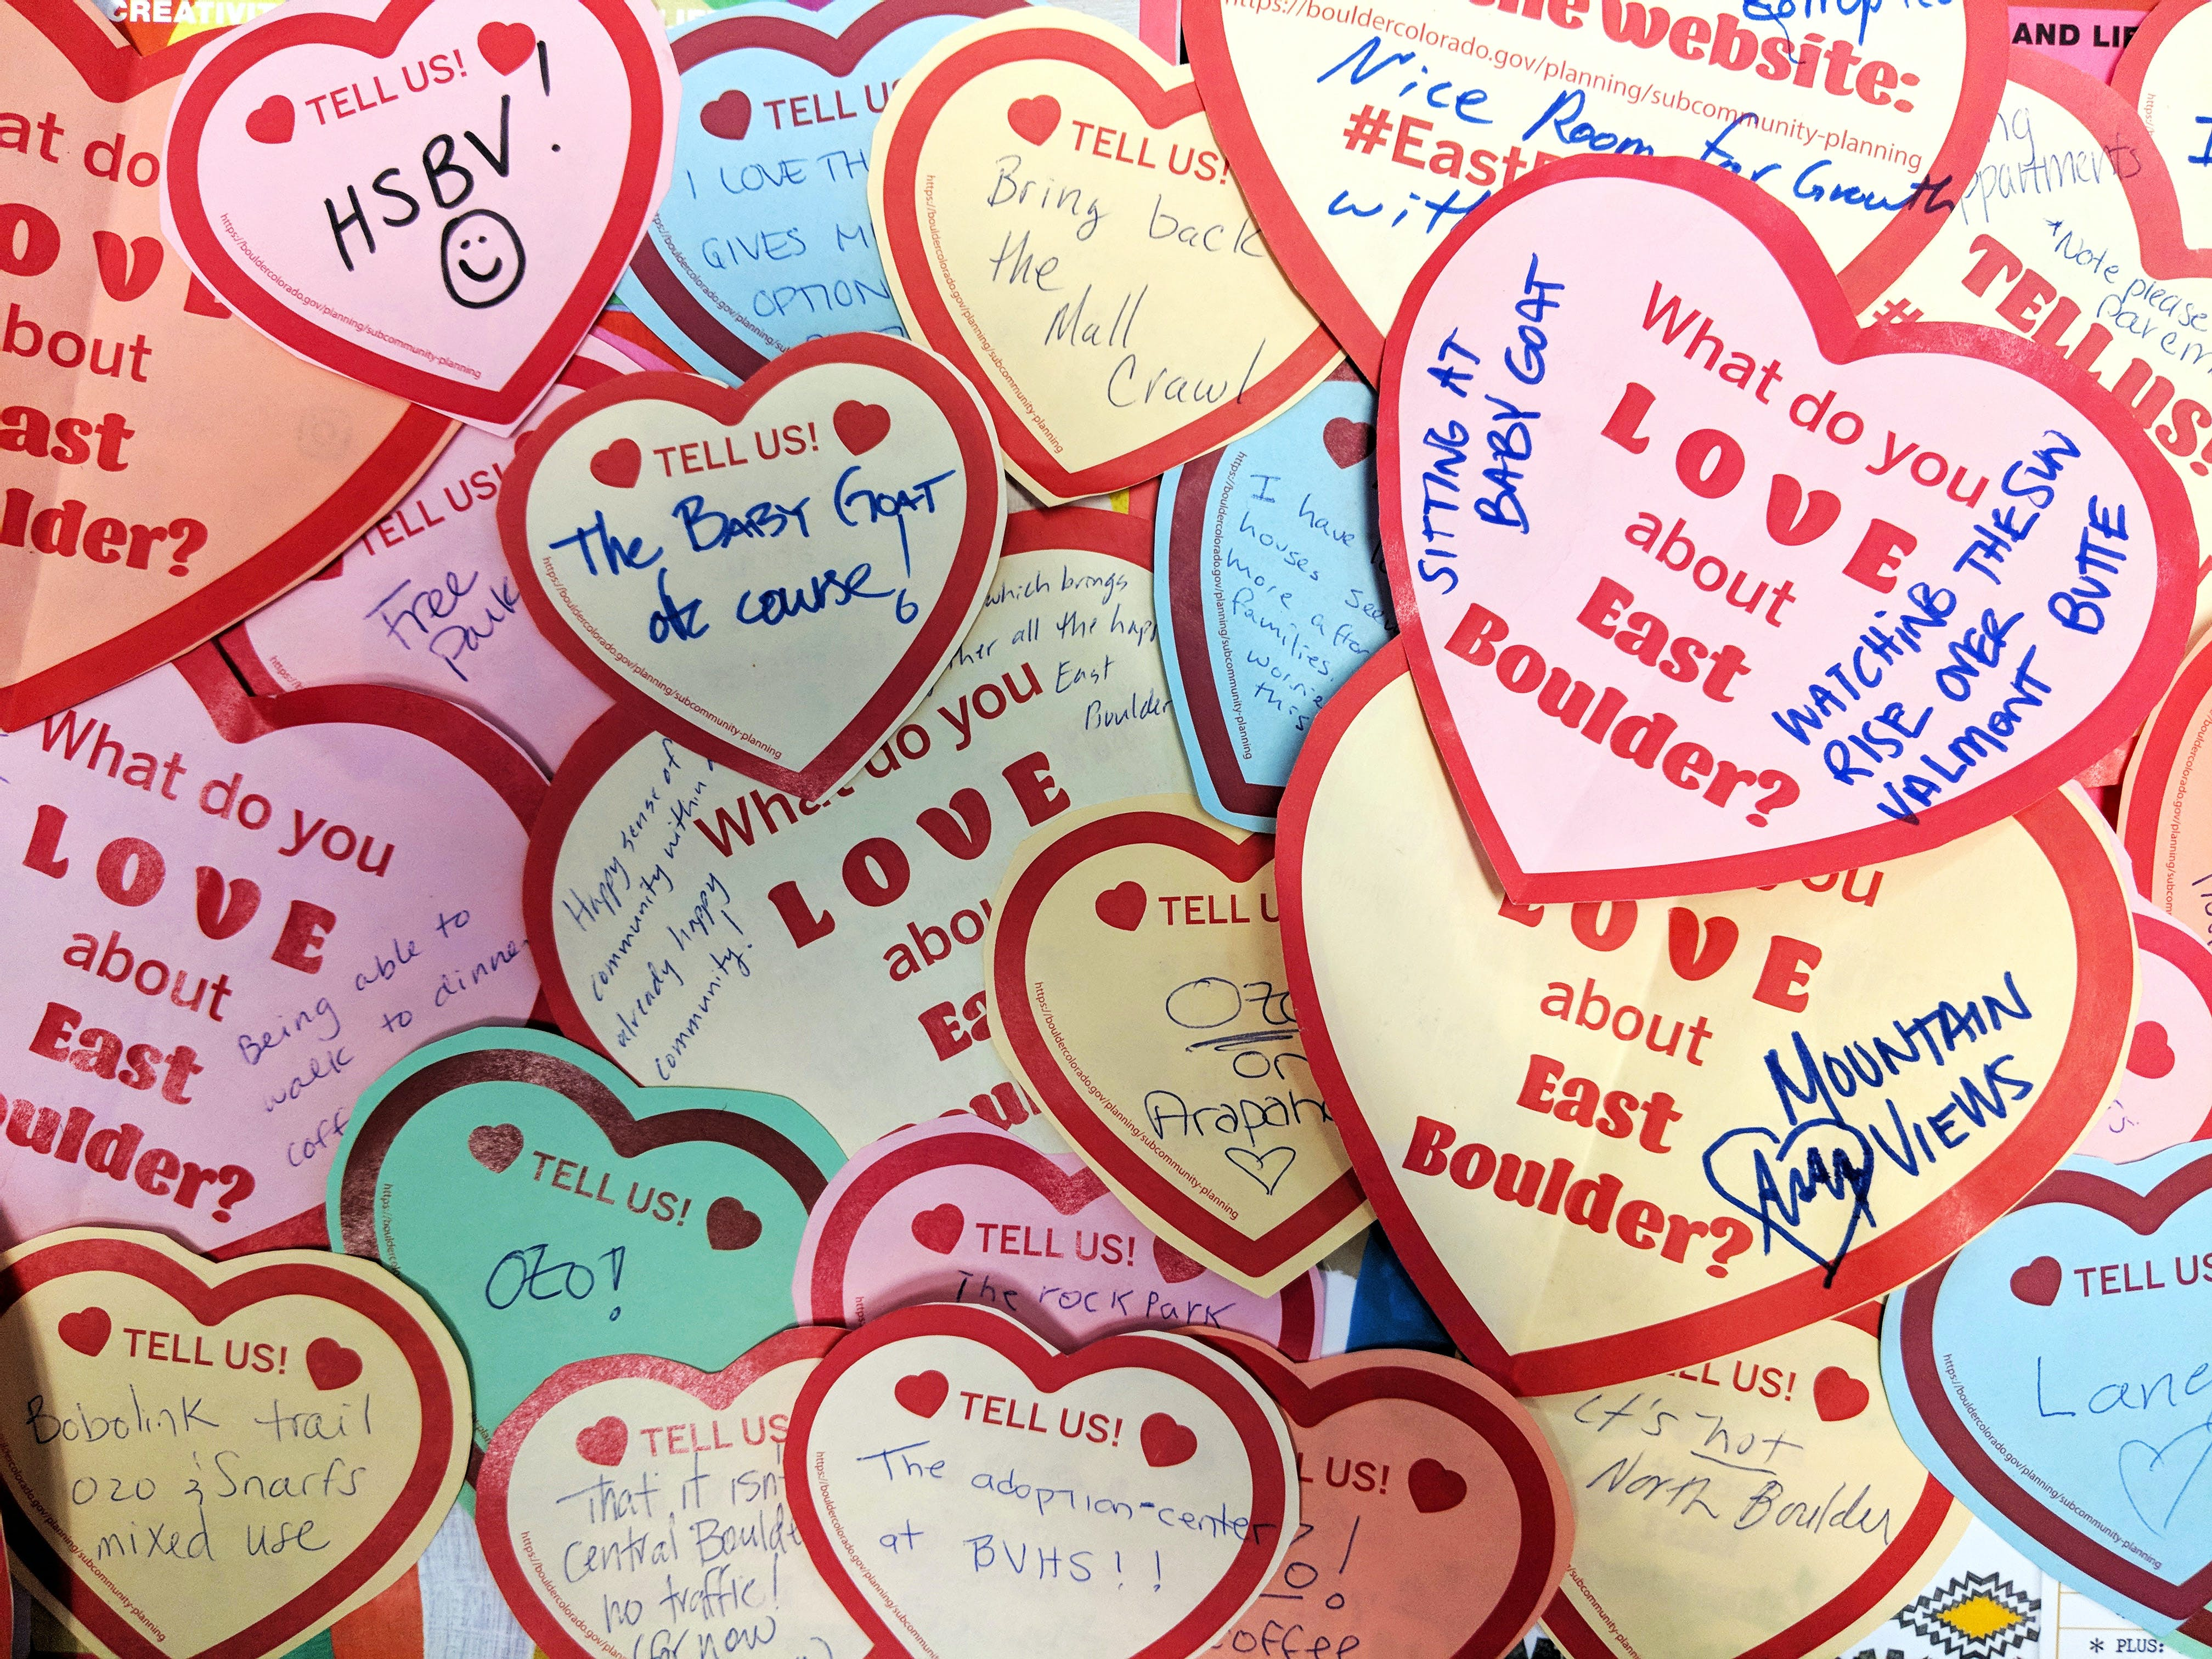 What do you LOVE about East Boulder?